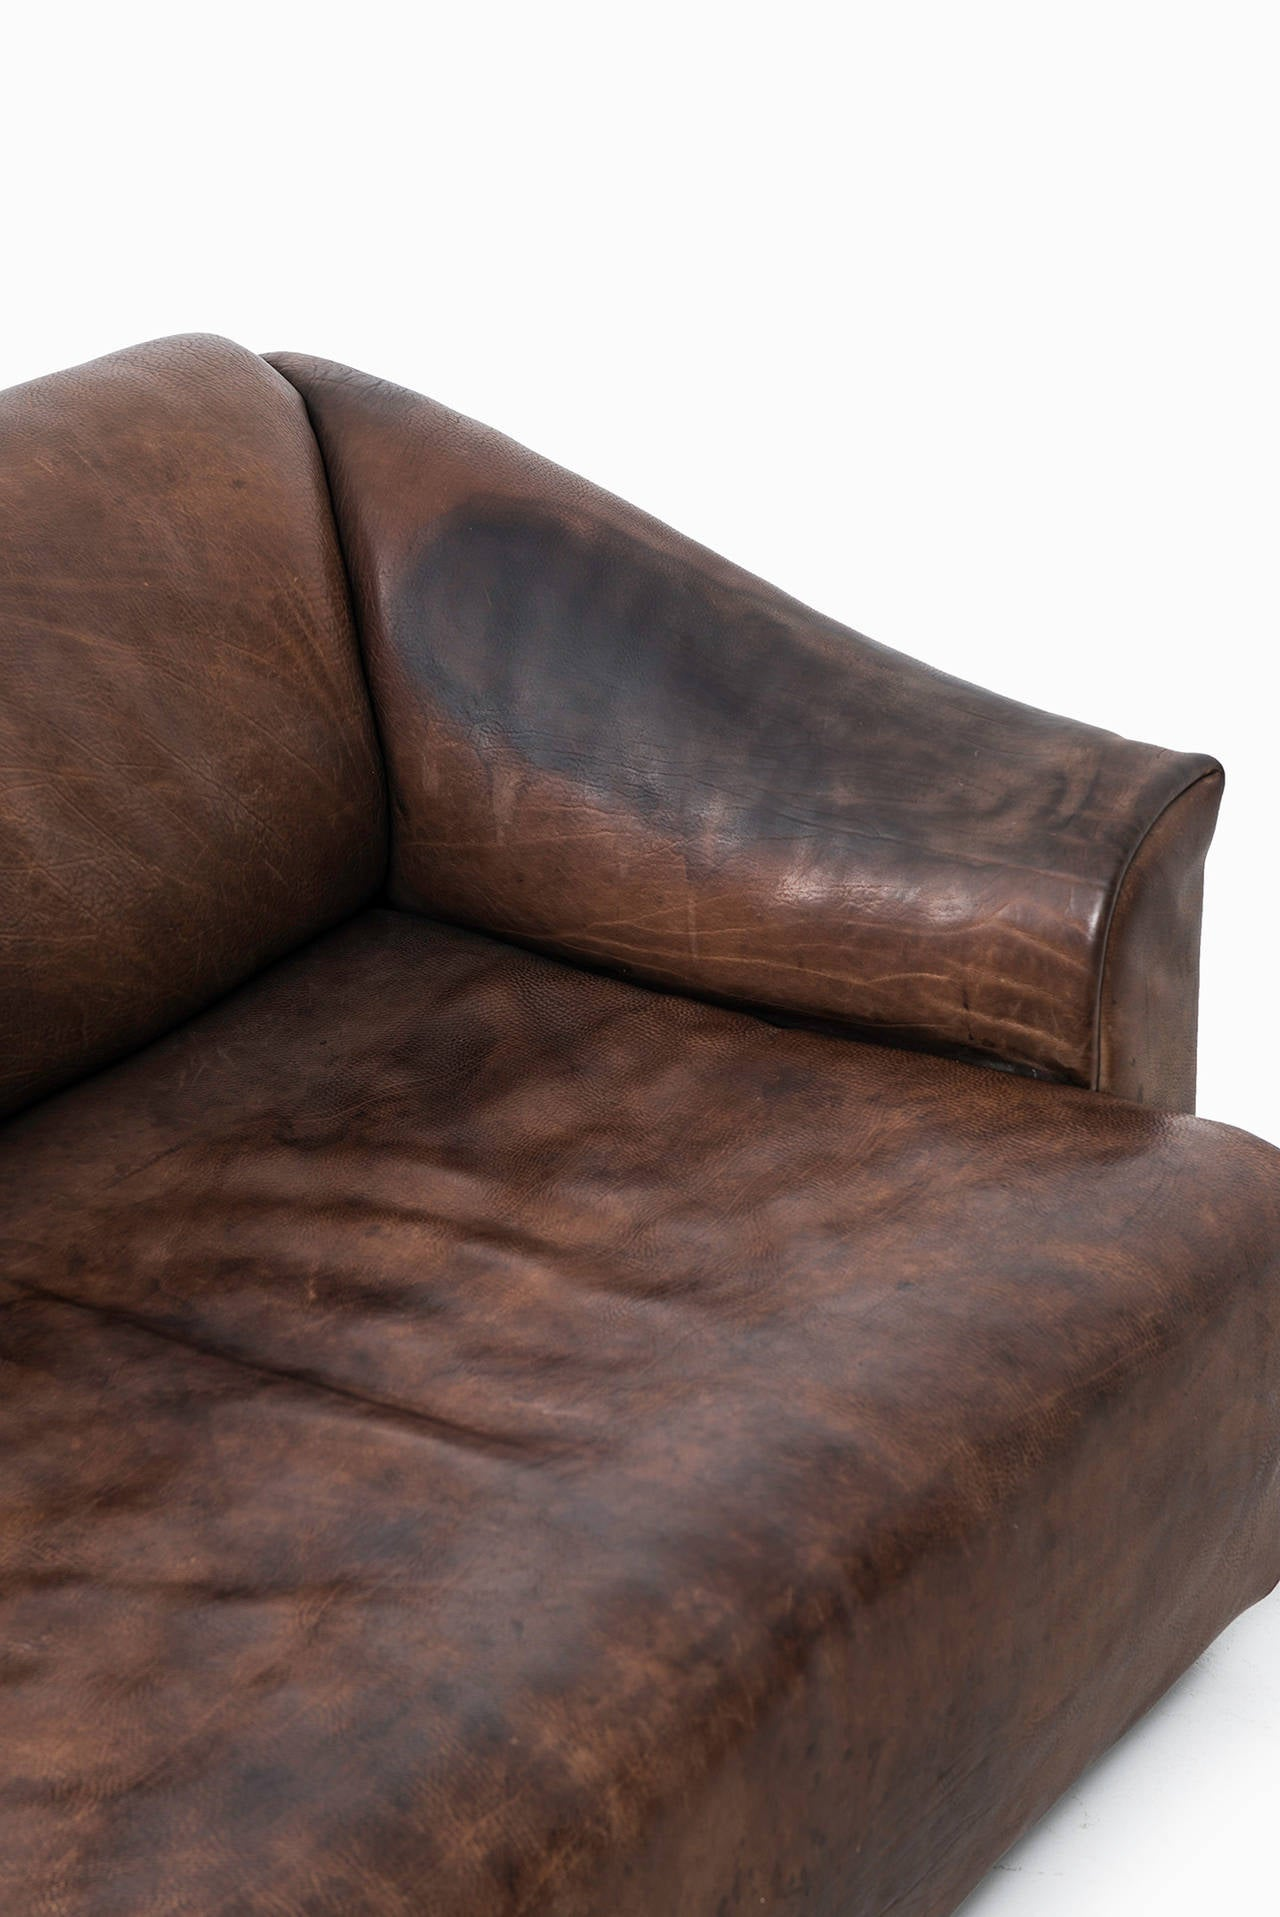 De Sede Sofa and Easy Chair Model DS-47 by De Sede in Switzerland For Sale 1